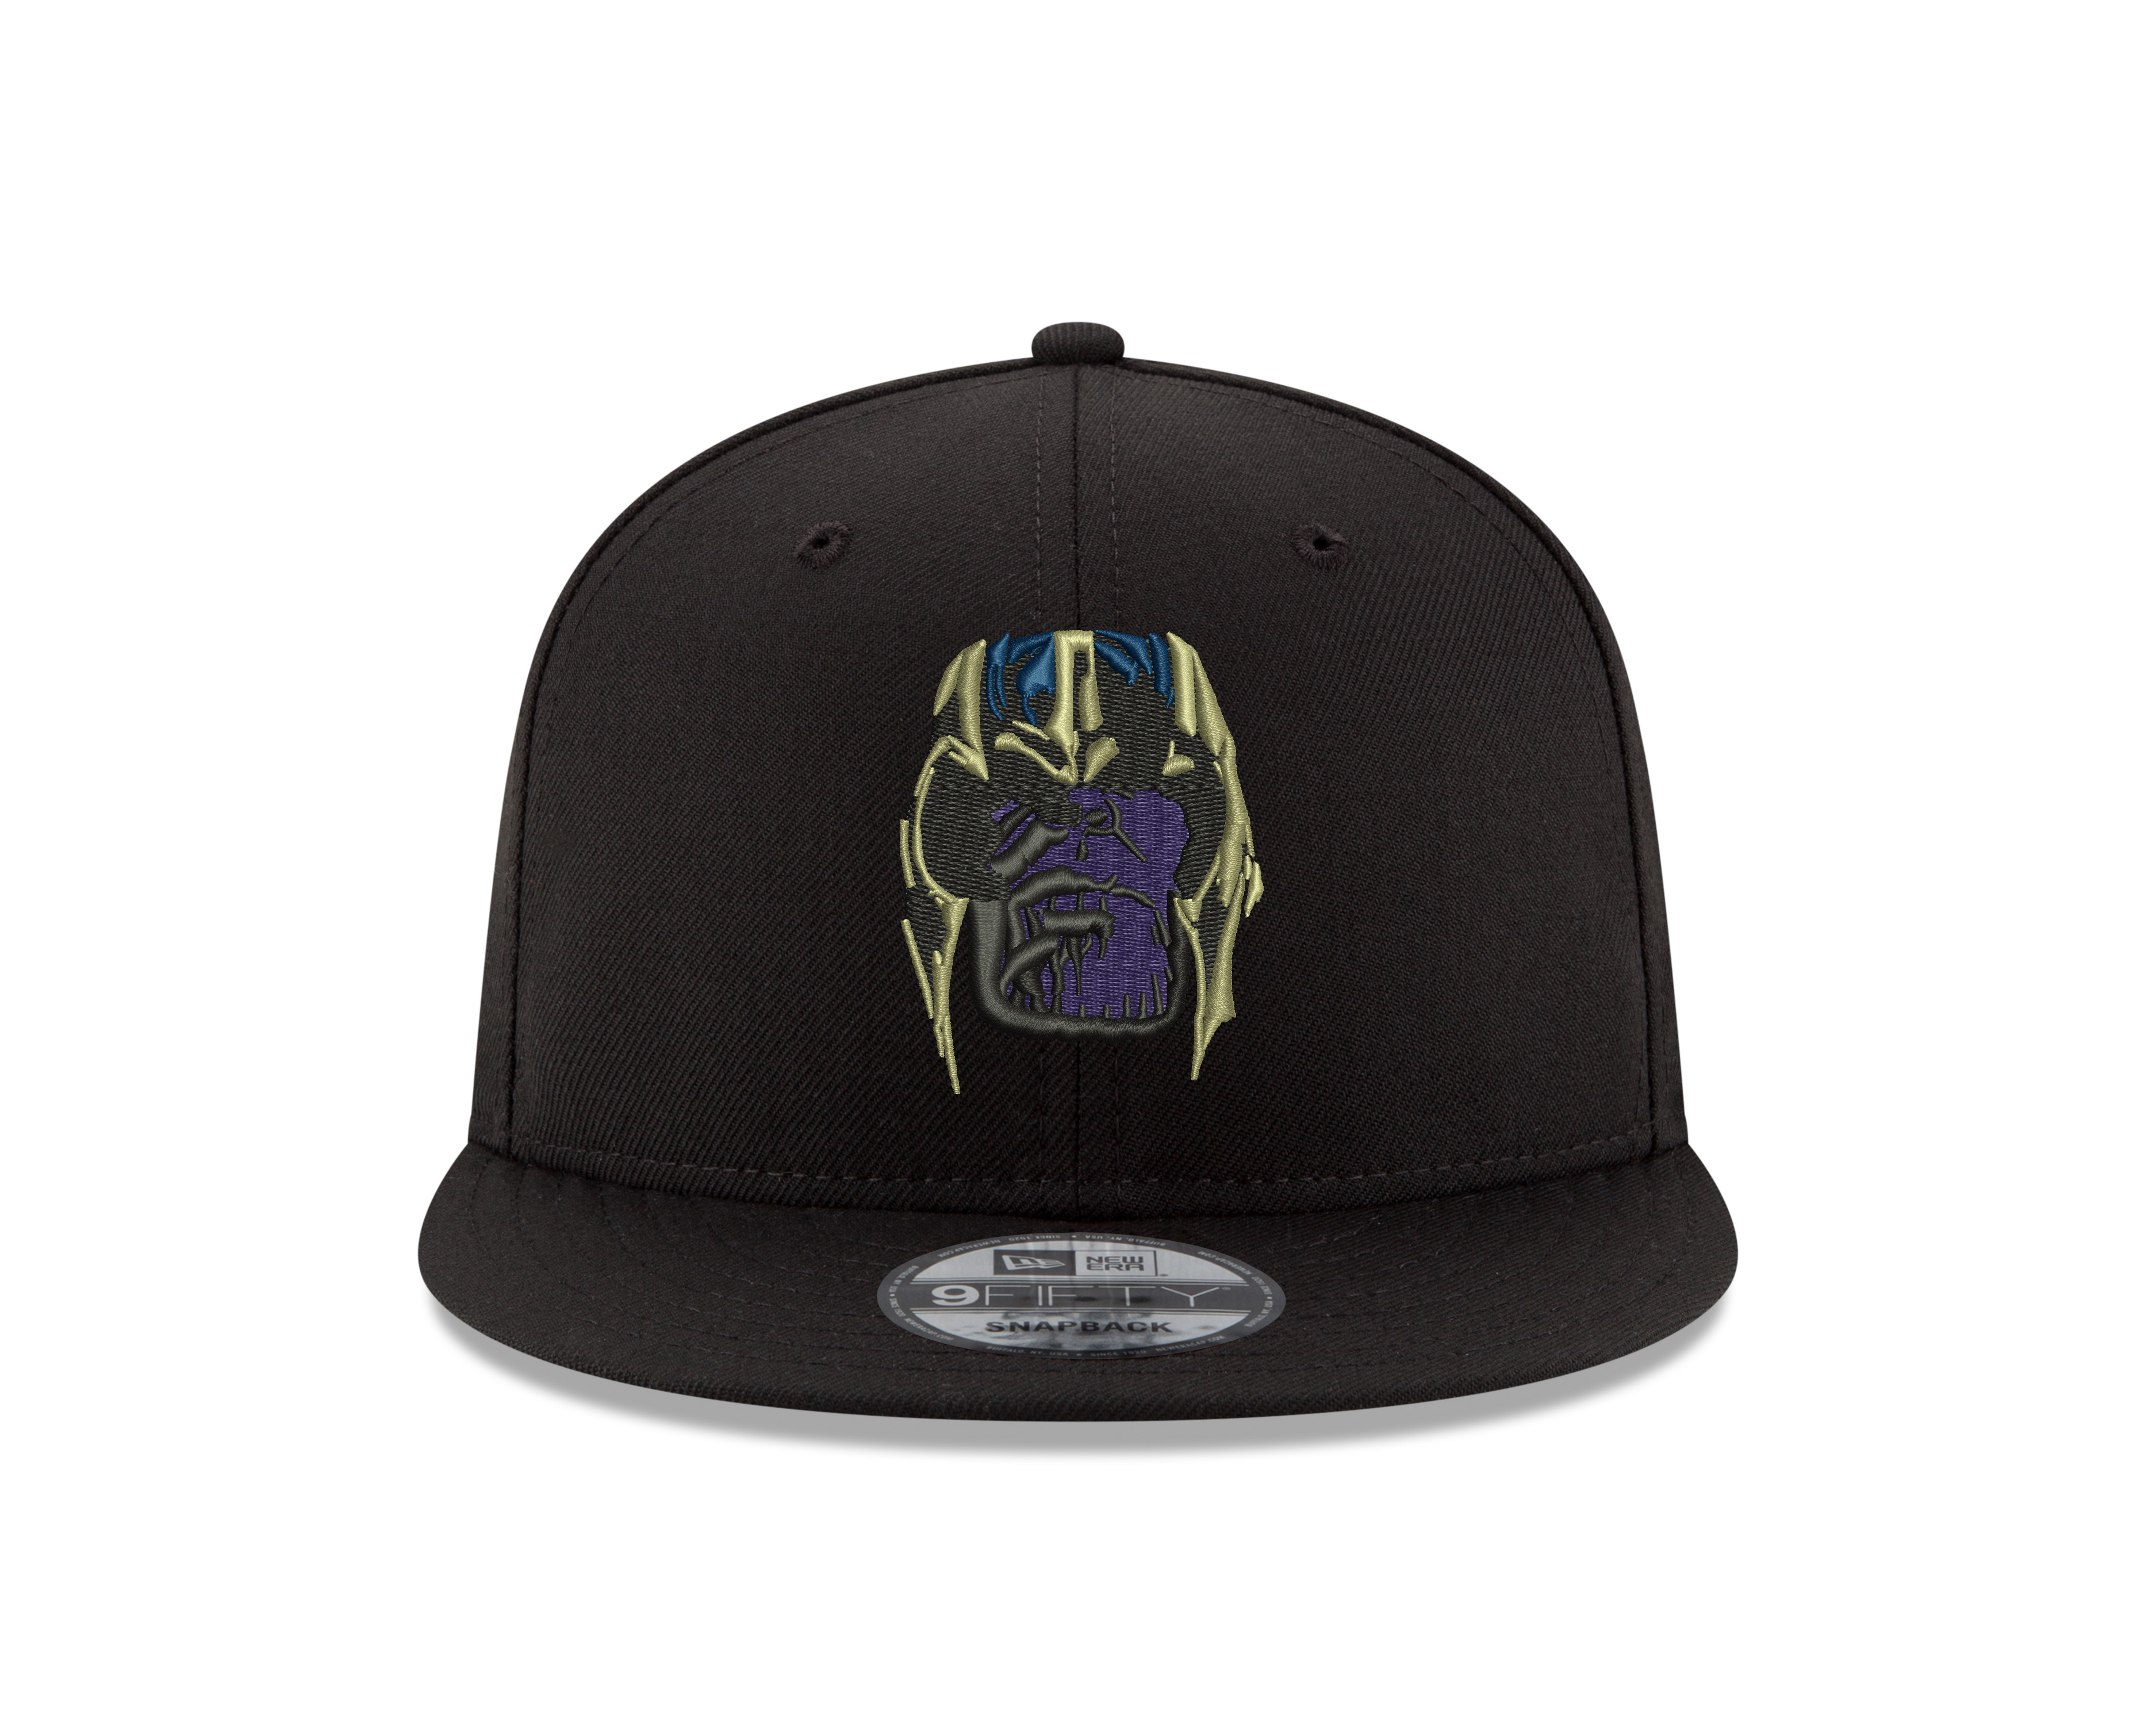 c01b02889fff4 Details about New Era Marvel Avengers Endgame Thanos Snapback Hat 9FIFTY  Infinity War Adult